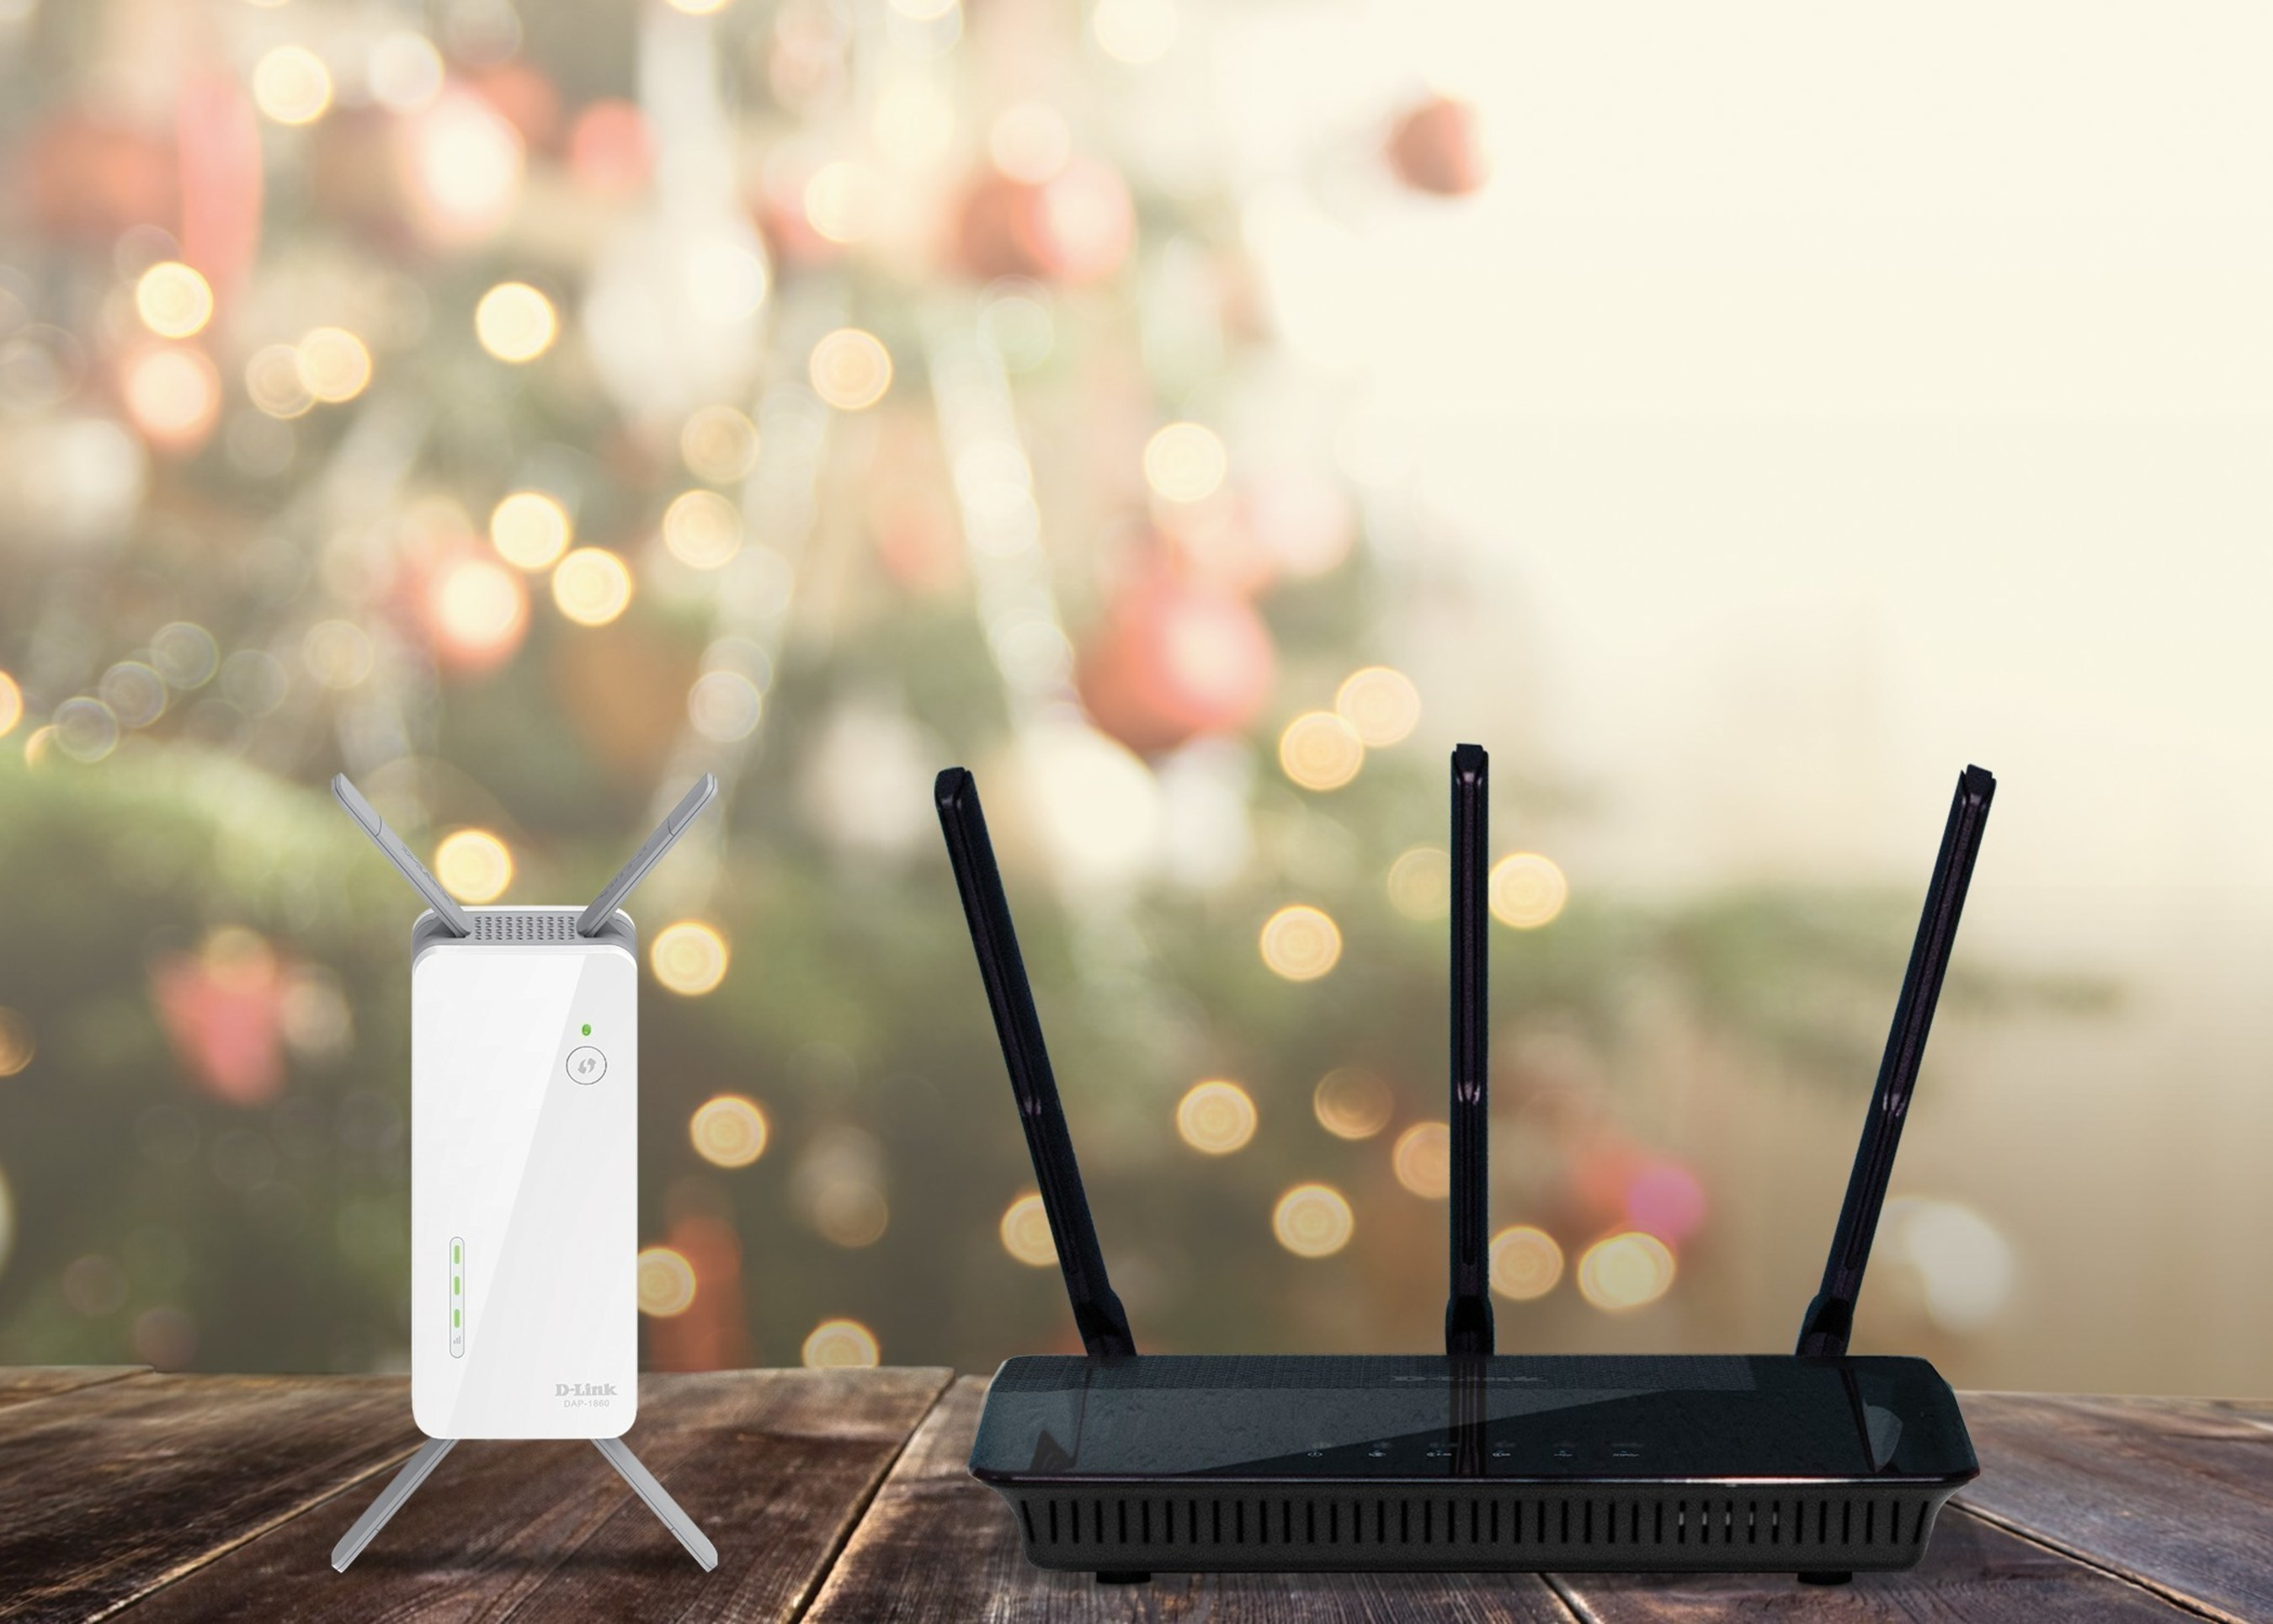 D-Link is gifting tech tips and home networking gear to ensure Wi-Fi performance is up to speed during the holidays and through the new year.